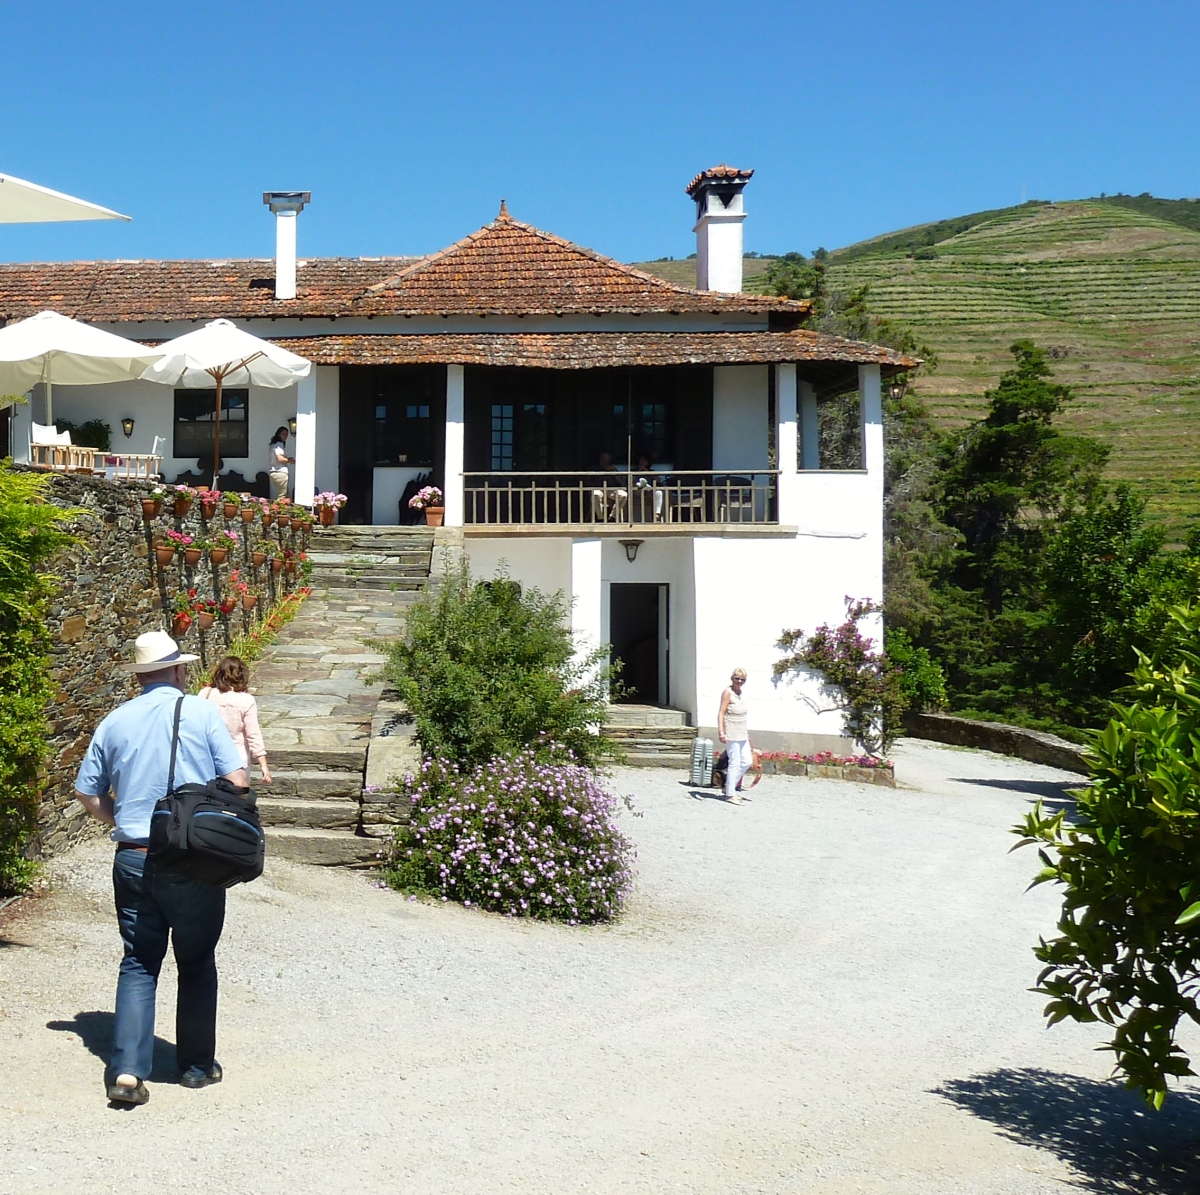 Portugal Revisited - 10. Lunch At Quinta do Crasto